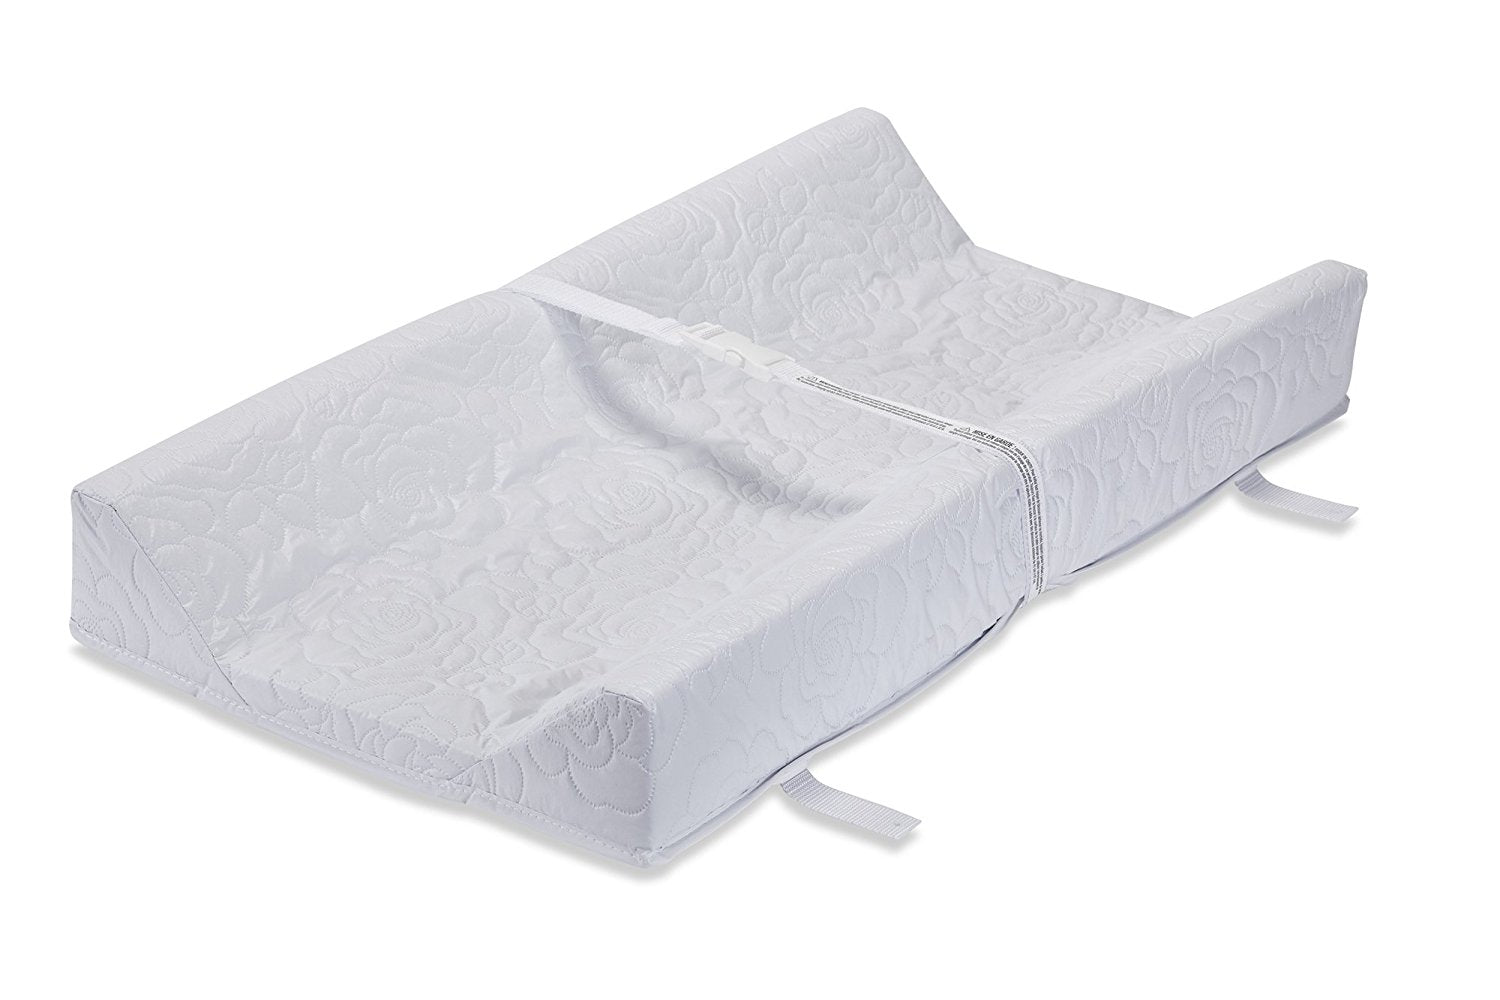 L.A. Baby Contour Changing Pad